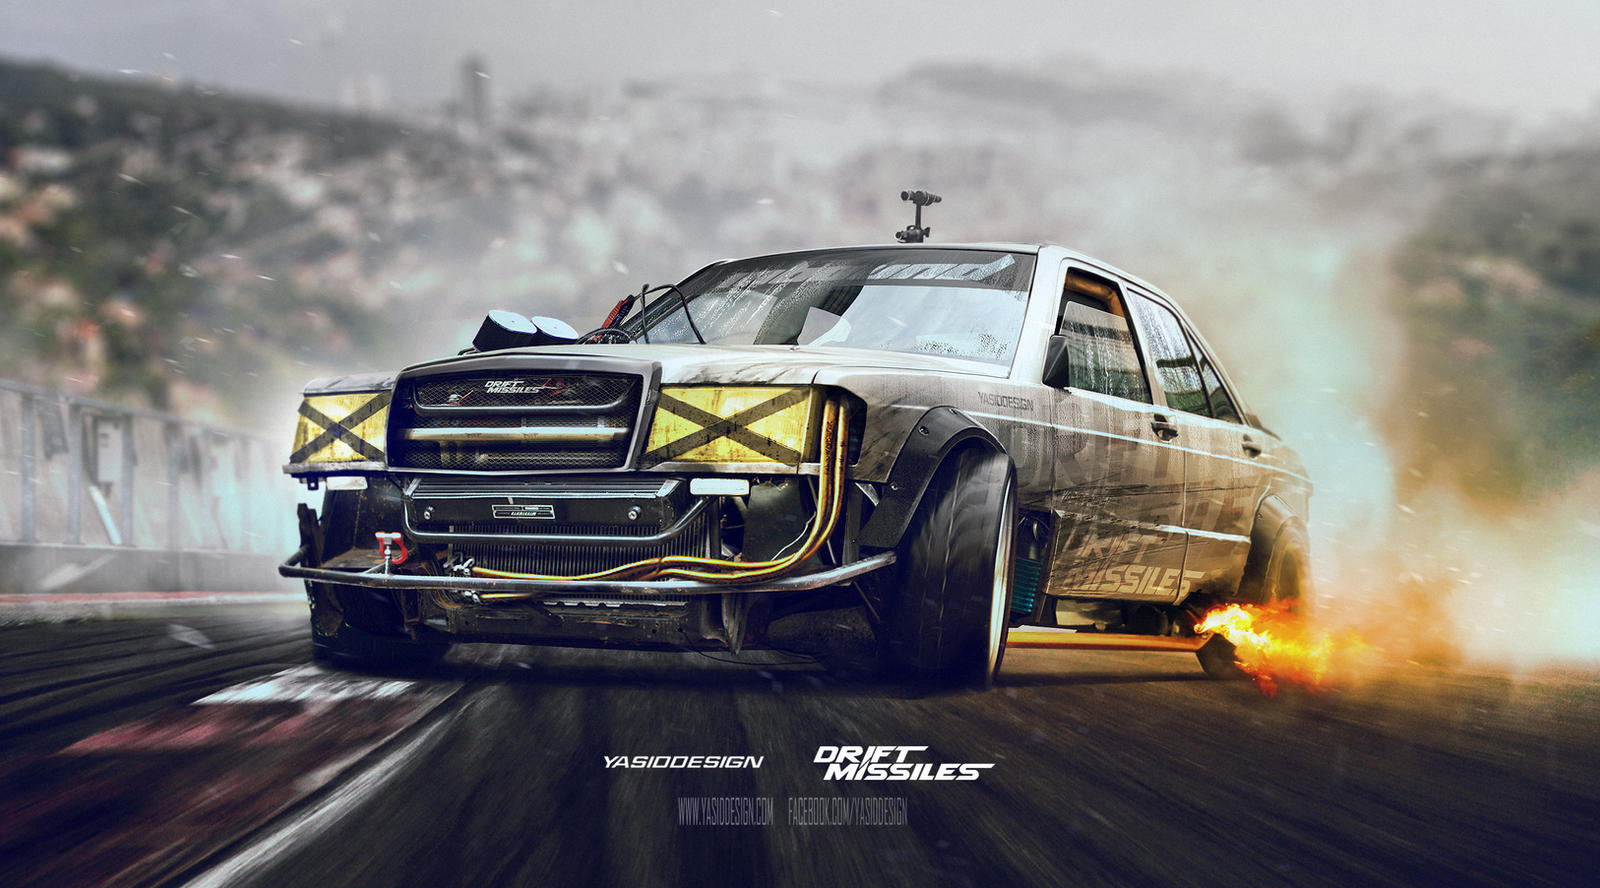 Drift Missile Mercedes W201 By Yasiddesign On Deviantart